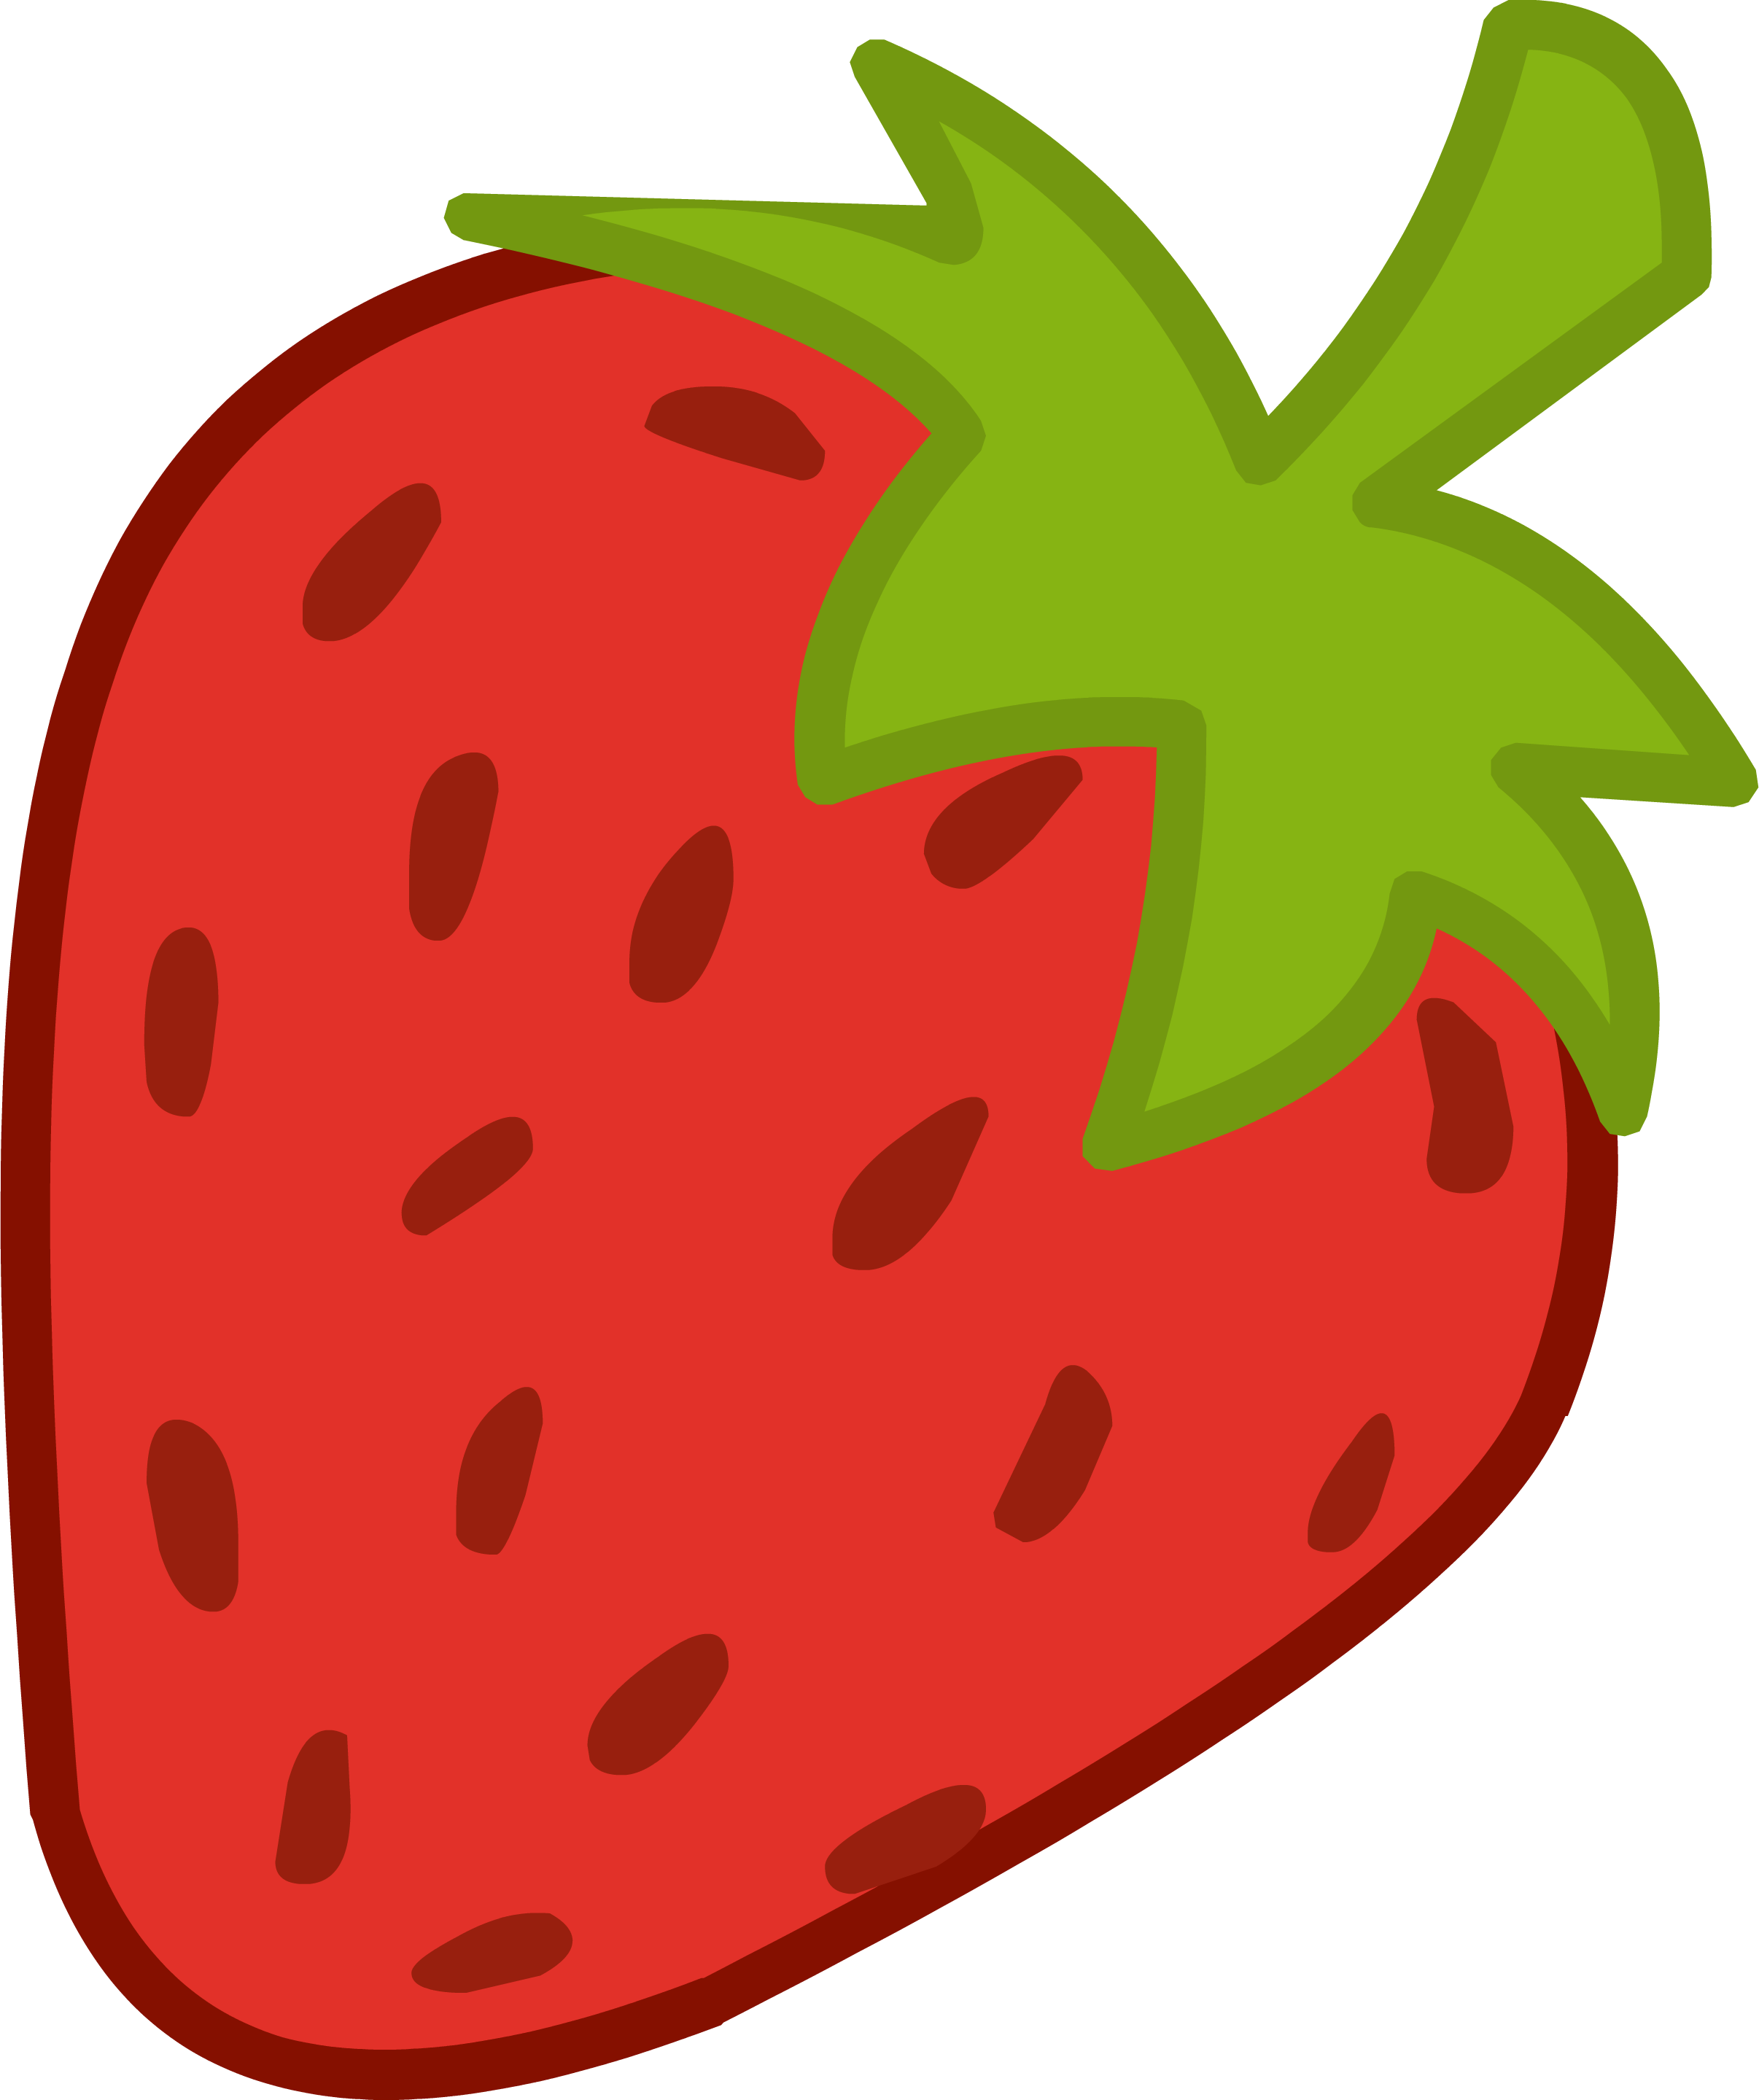 2412x2880 Strawberry Shortcake Clipart Free Clip Art Images.png